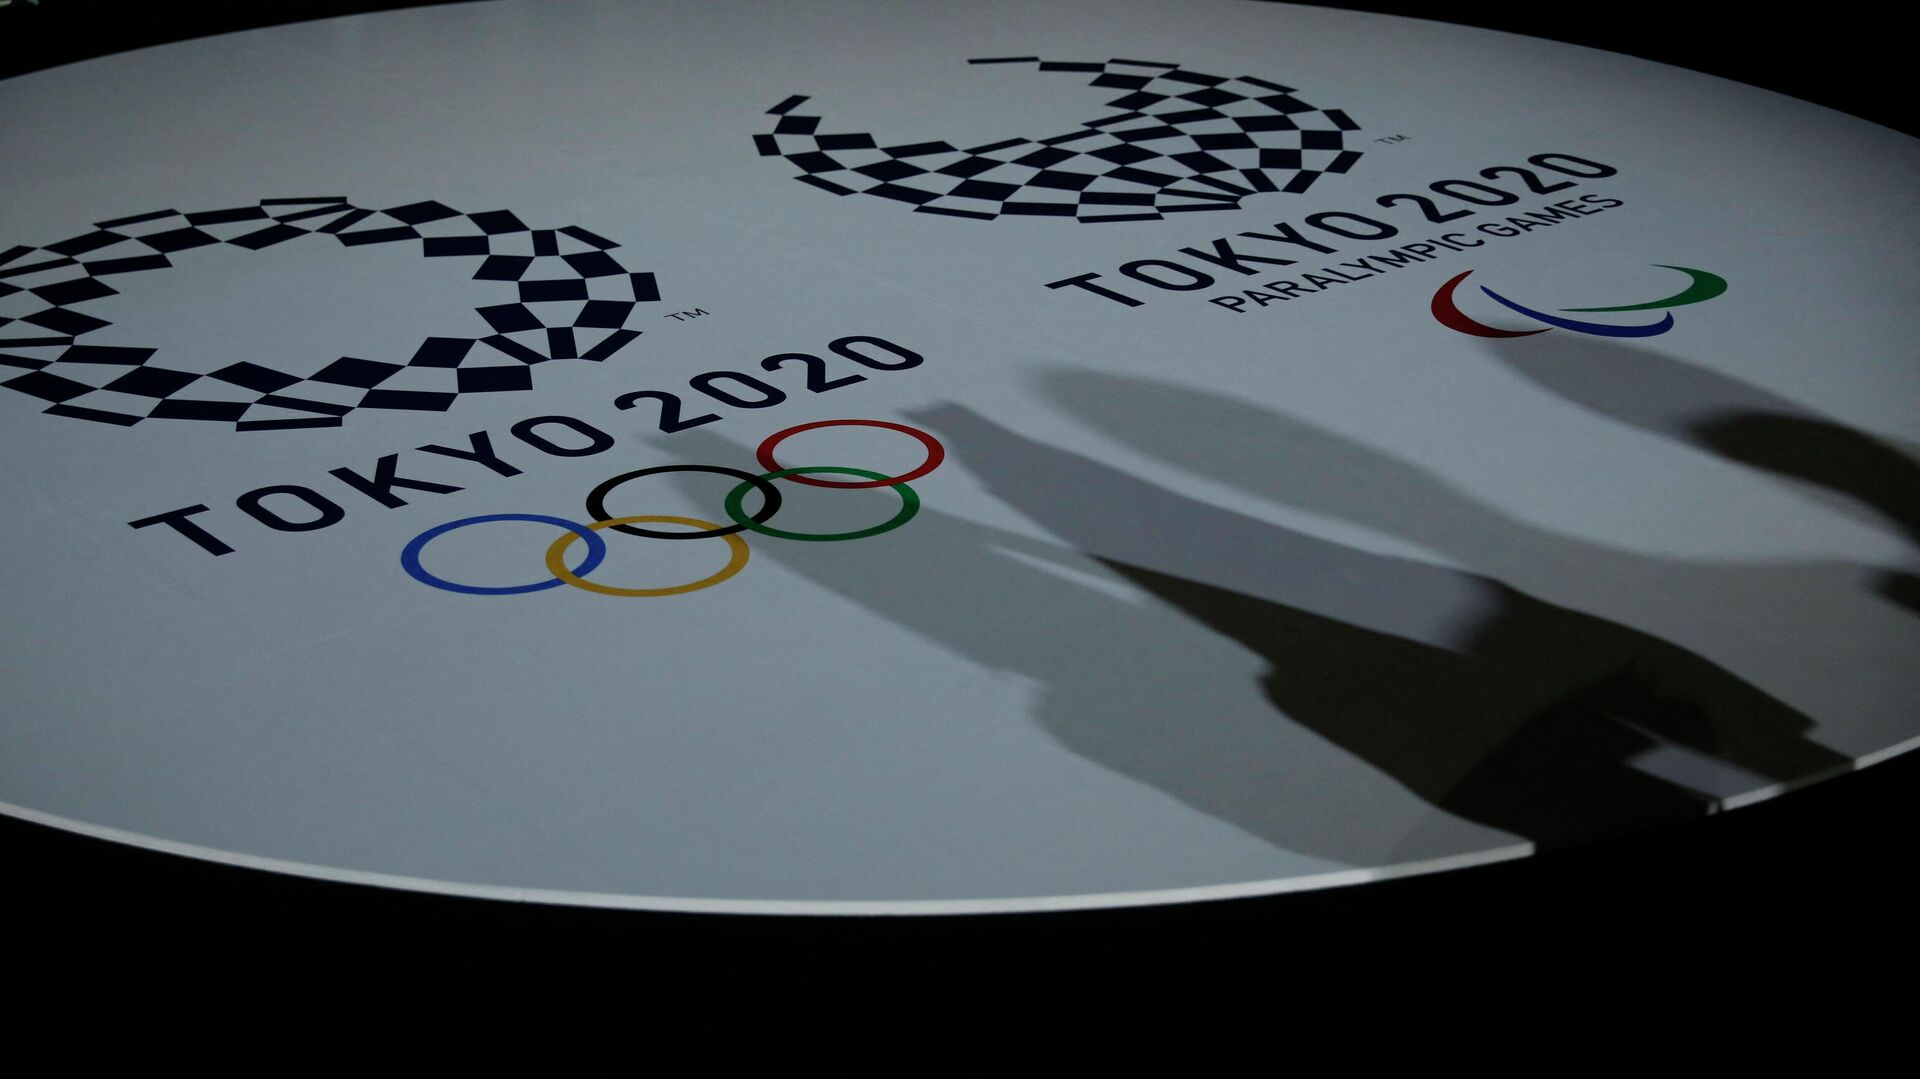 The emblems of the Tokyo 2020 Olympic and Paralympic Games are displayed during an event to unveil the medals, podium and music to be used for the medal ceremonies at the Tokyo 2020 Olympics Games at Ariake Arena in Tokyo on June 3, 2021. (Photo by ISSEI KATO / POOL / AFP) - РИА Новости, 1920, 15.06.2021